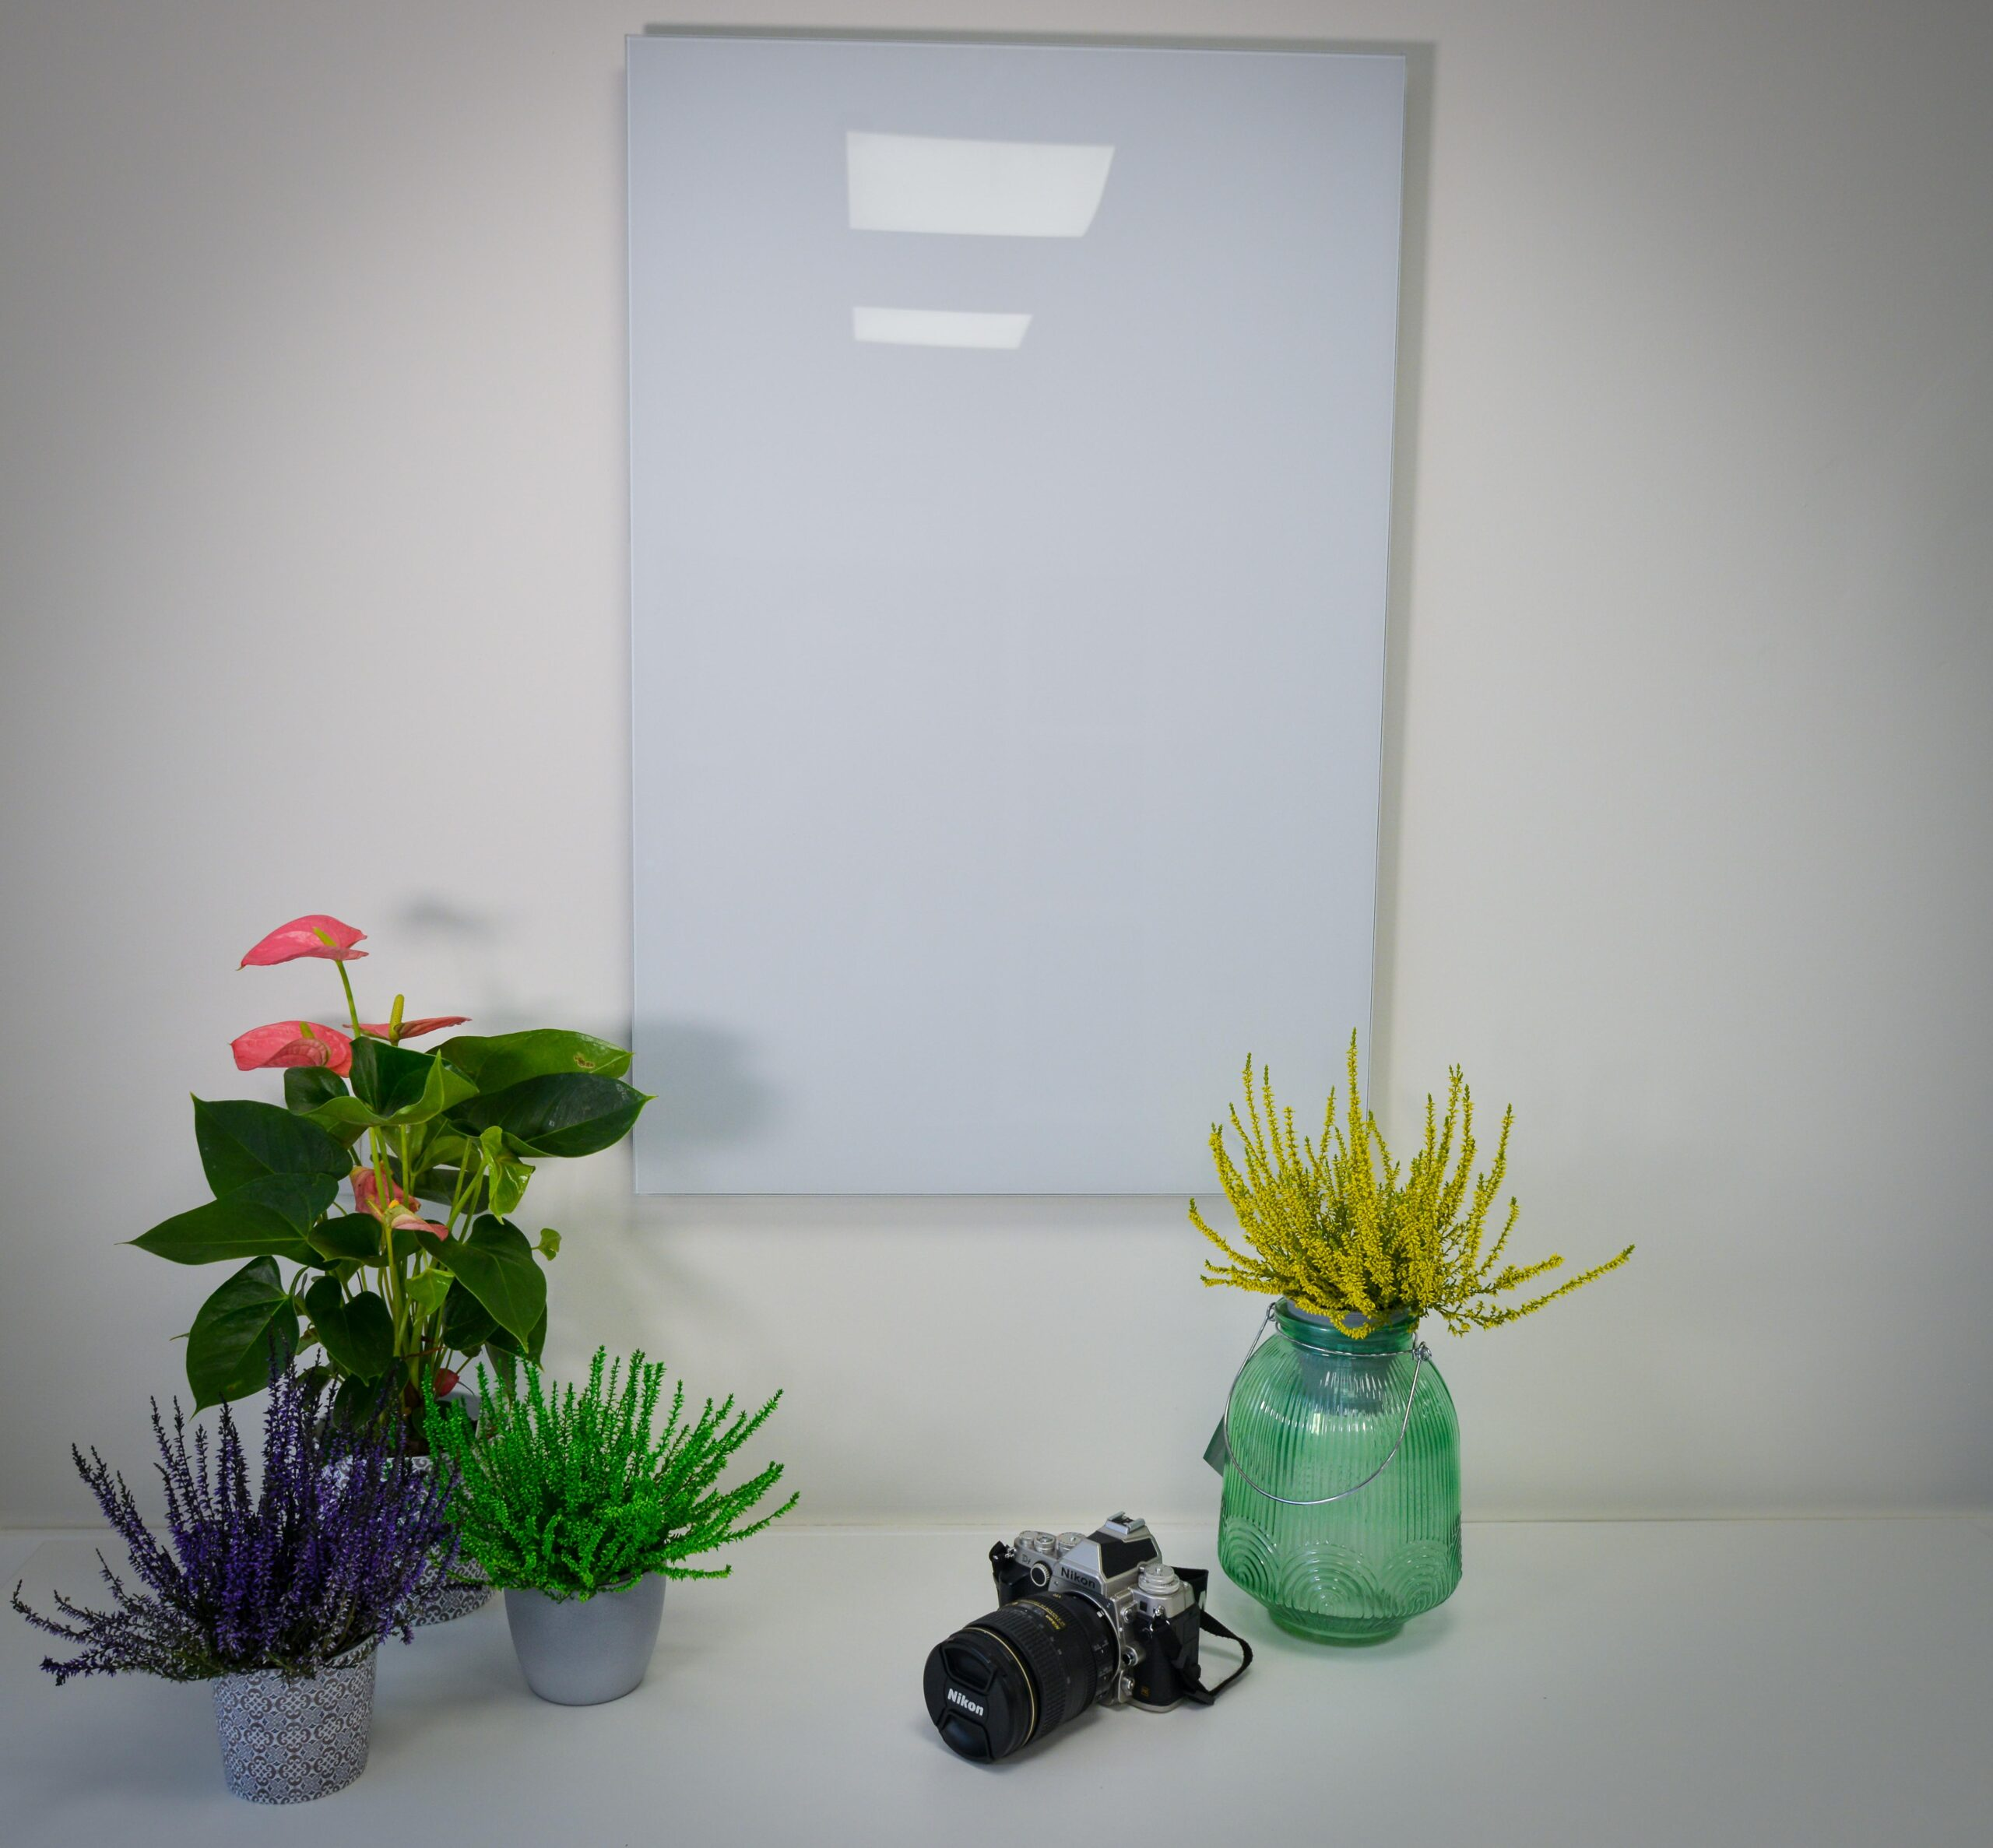 Wall mounted Glass Infrared Heater